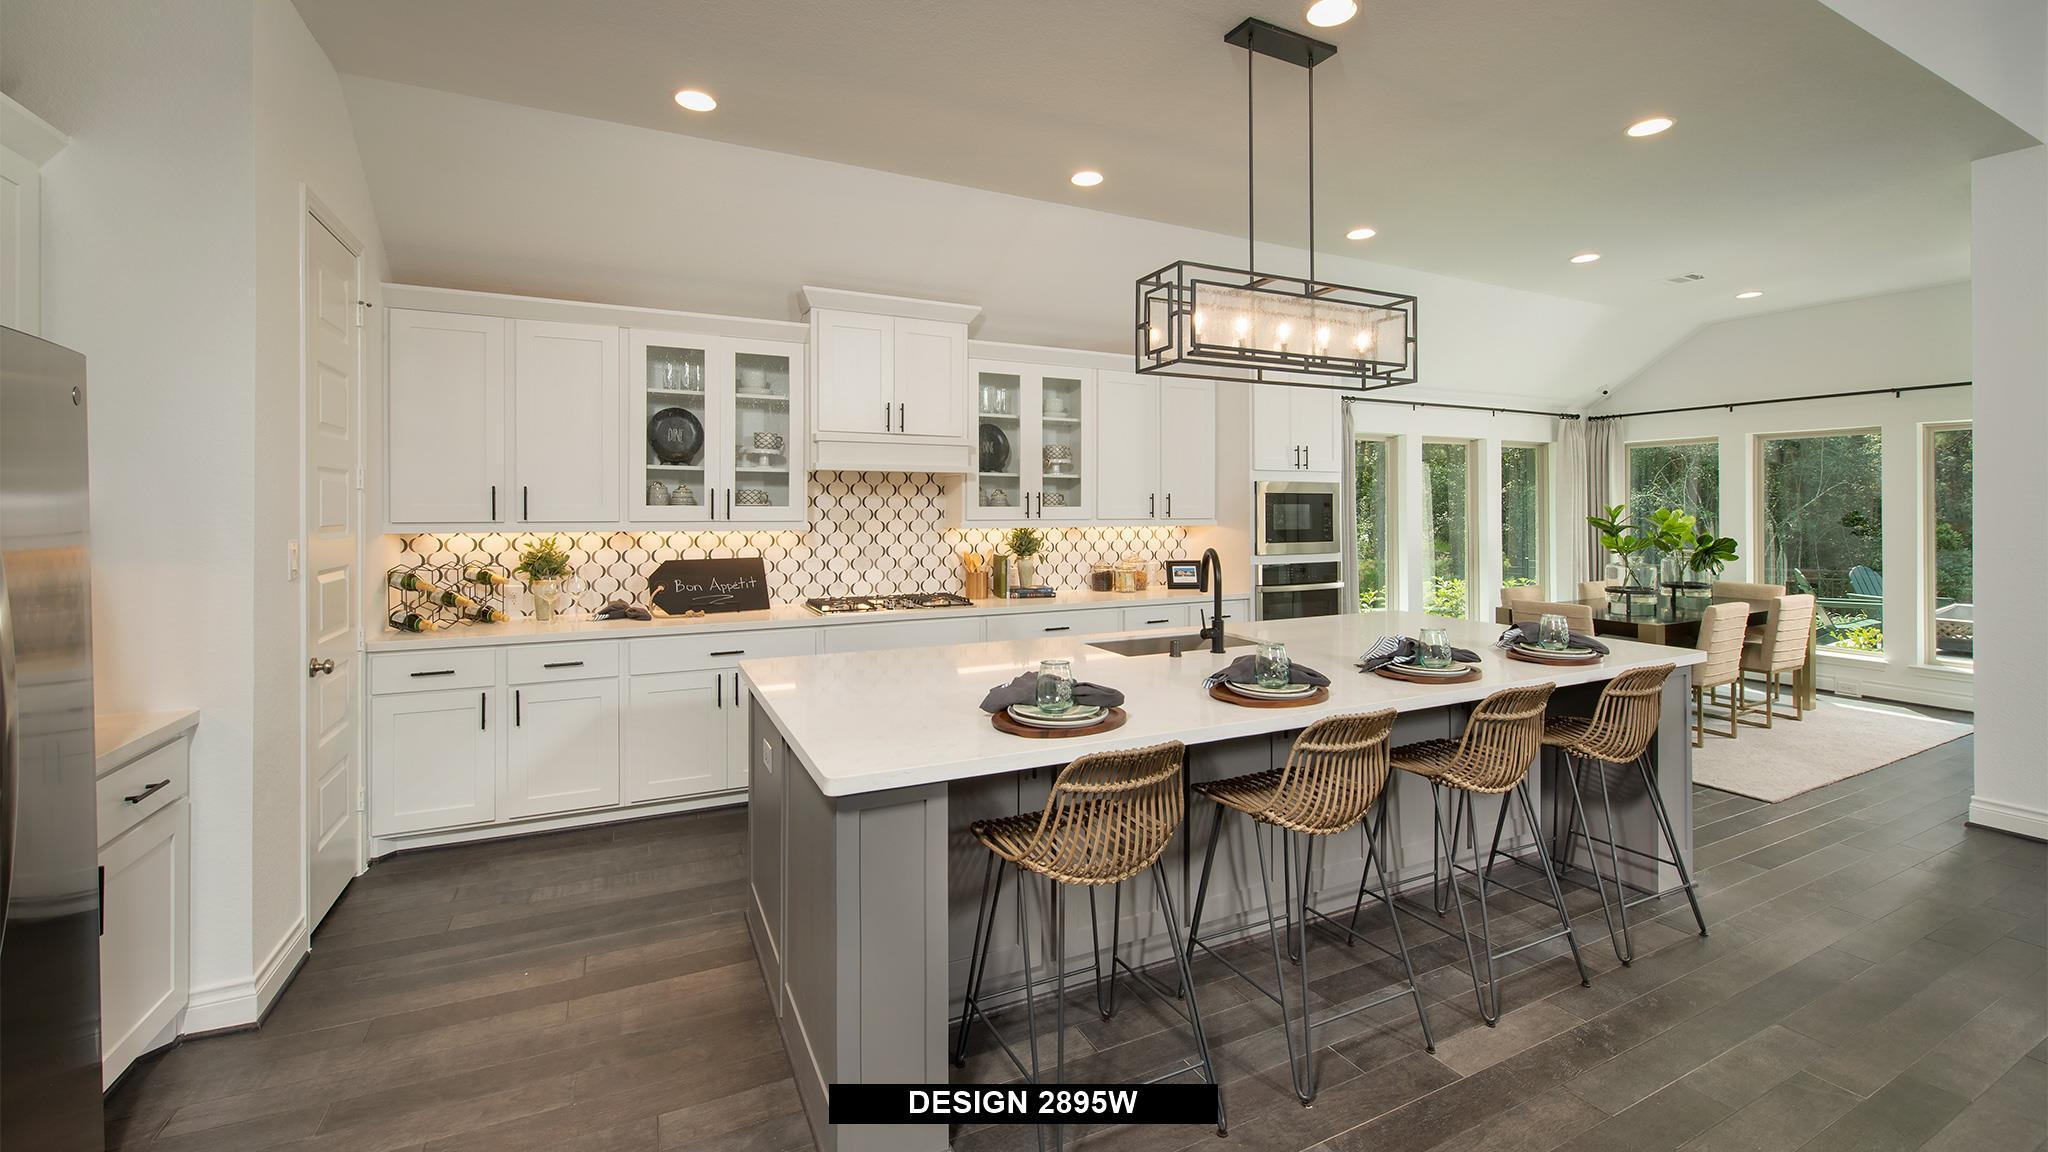 Kitchen featured in the 2895W By Perry Homes in San Antonio, TX